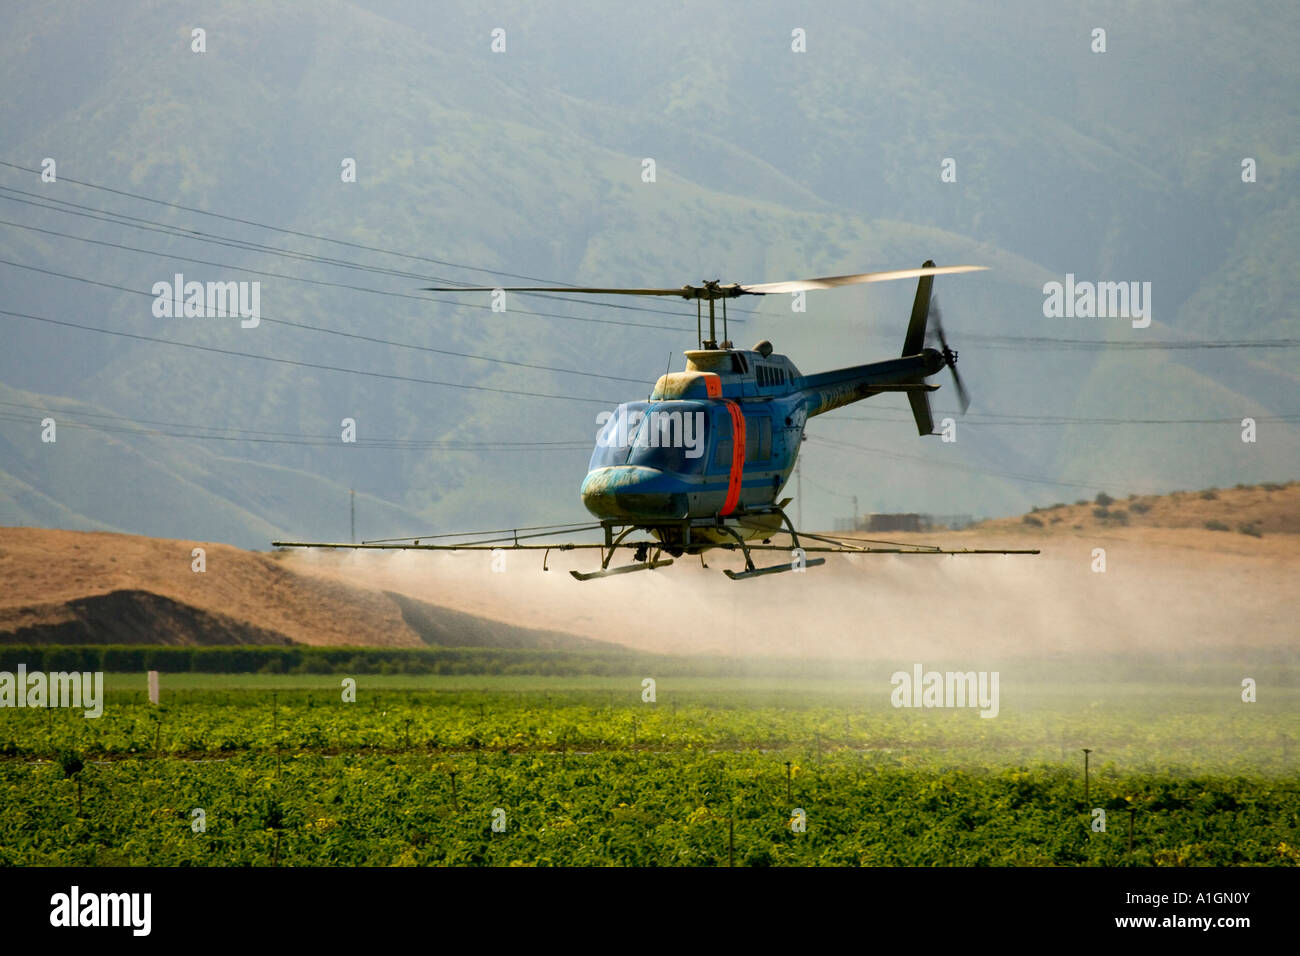 Helicopter spraying potato field, pre harvest. - Stock Image